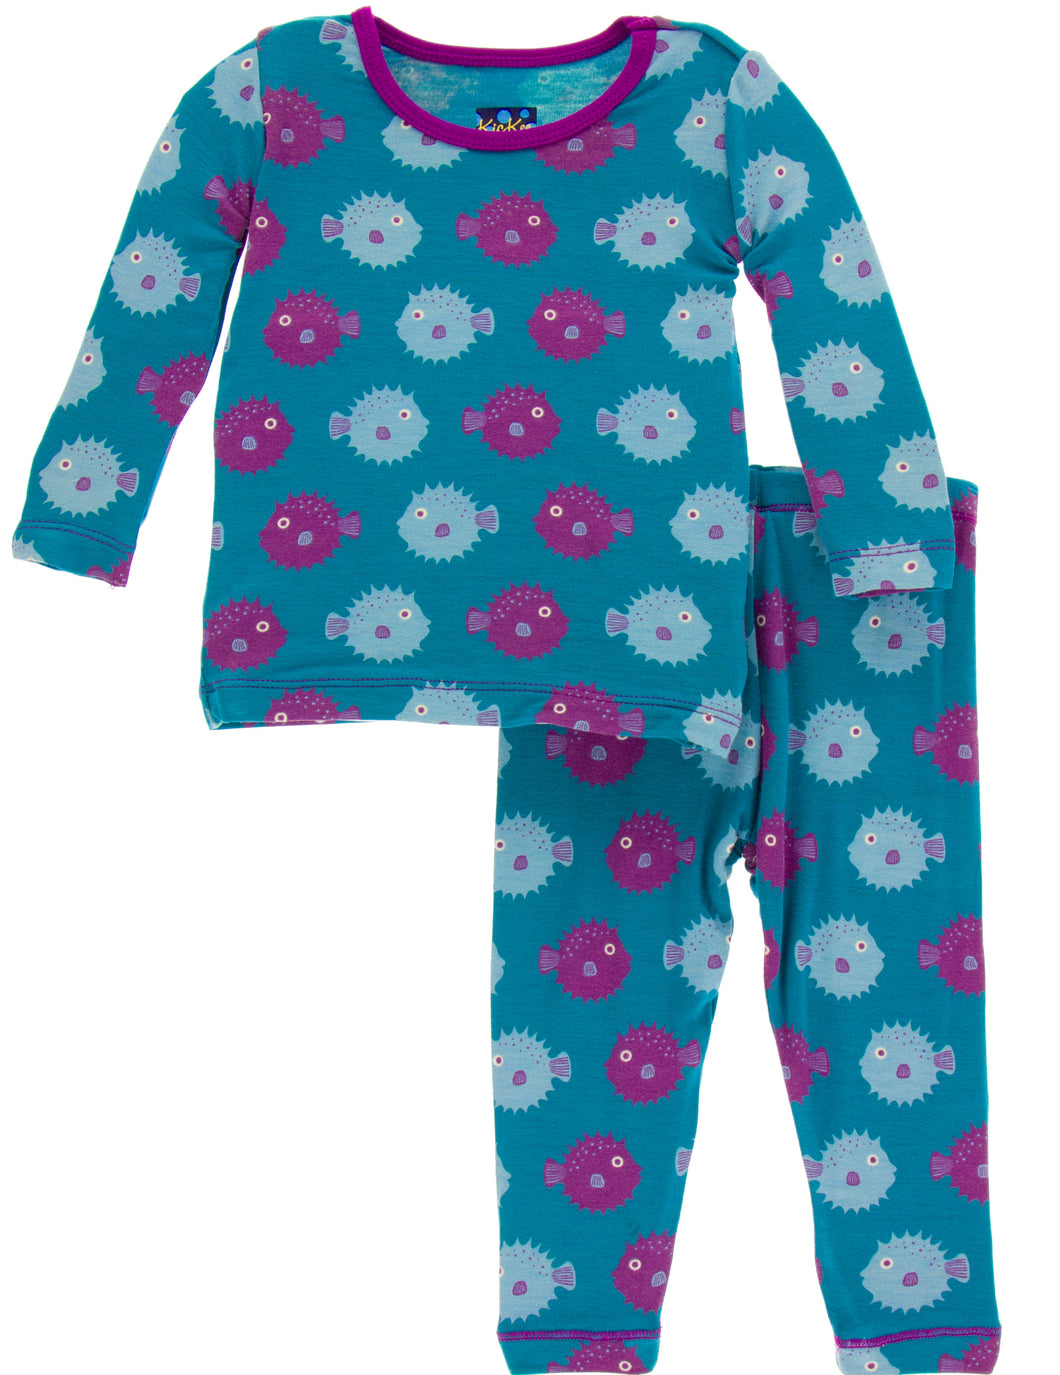 KicKee Pants Print Long Sleeve Pajama Set - Seagrass Puffer